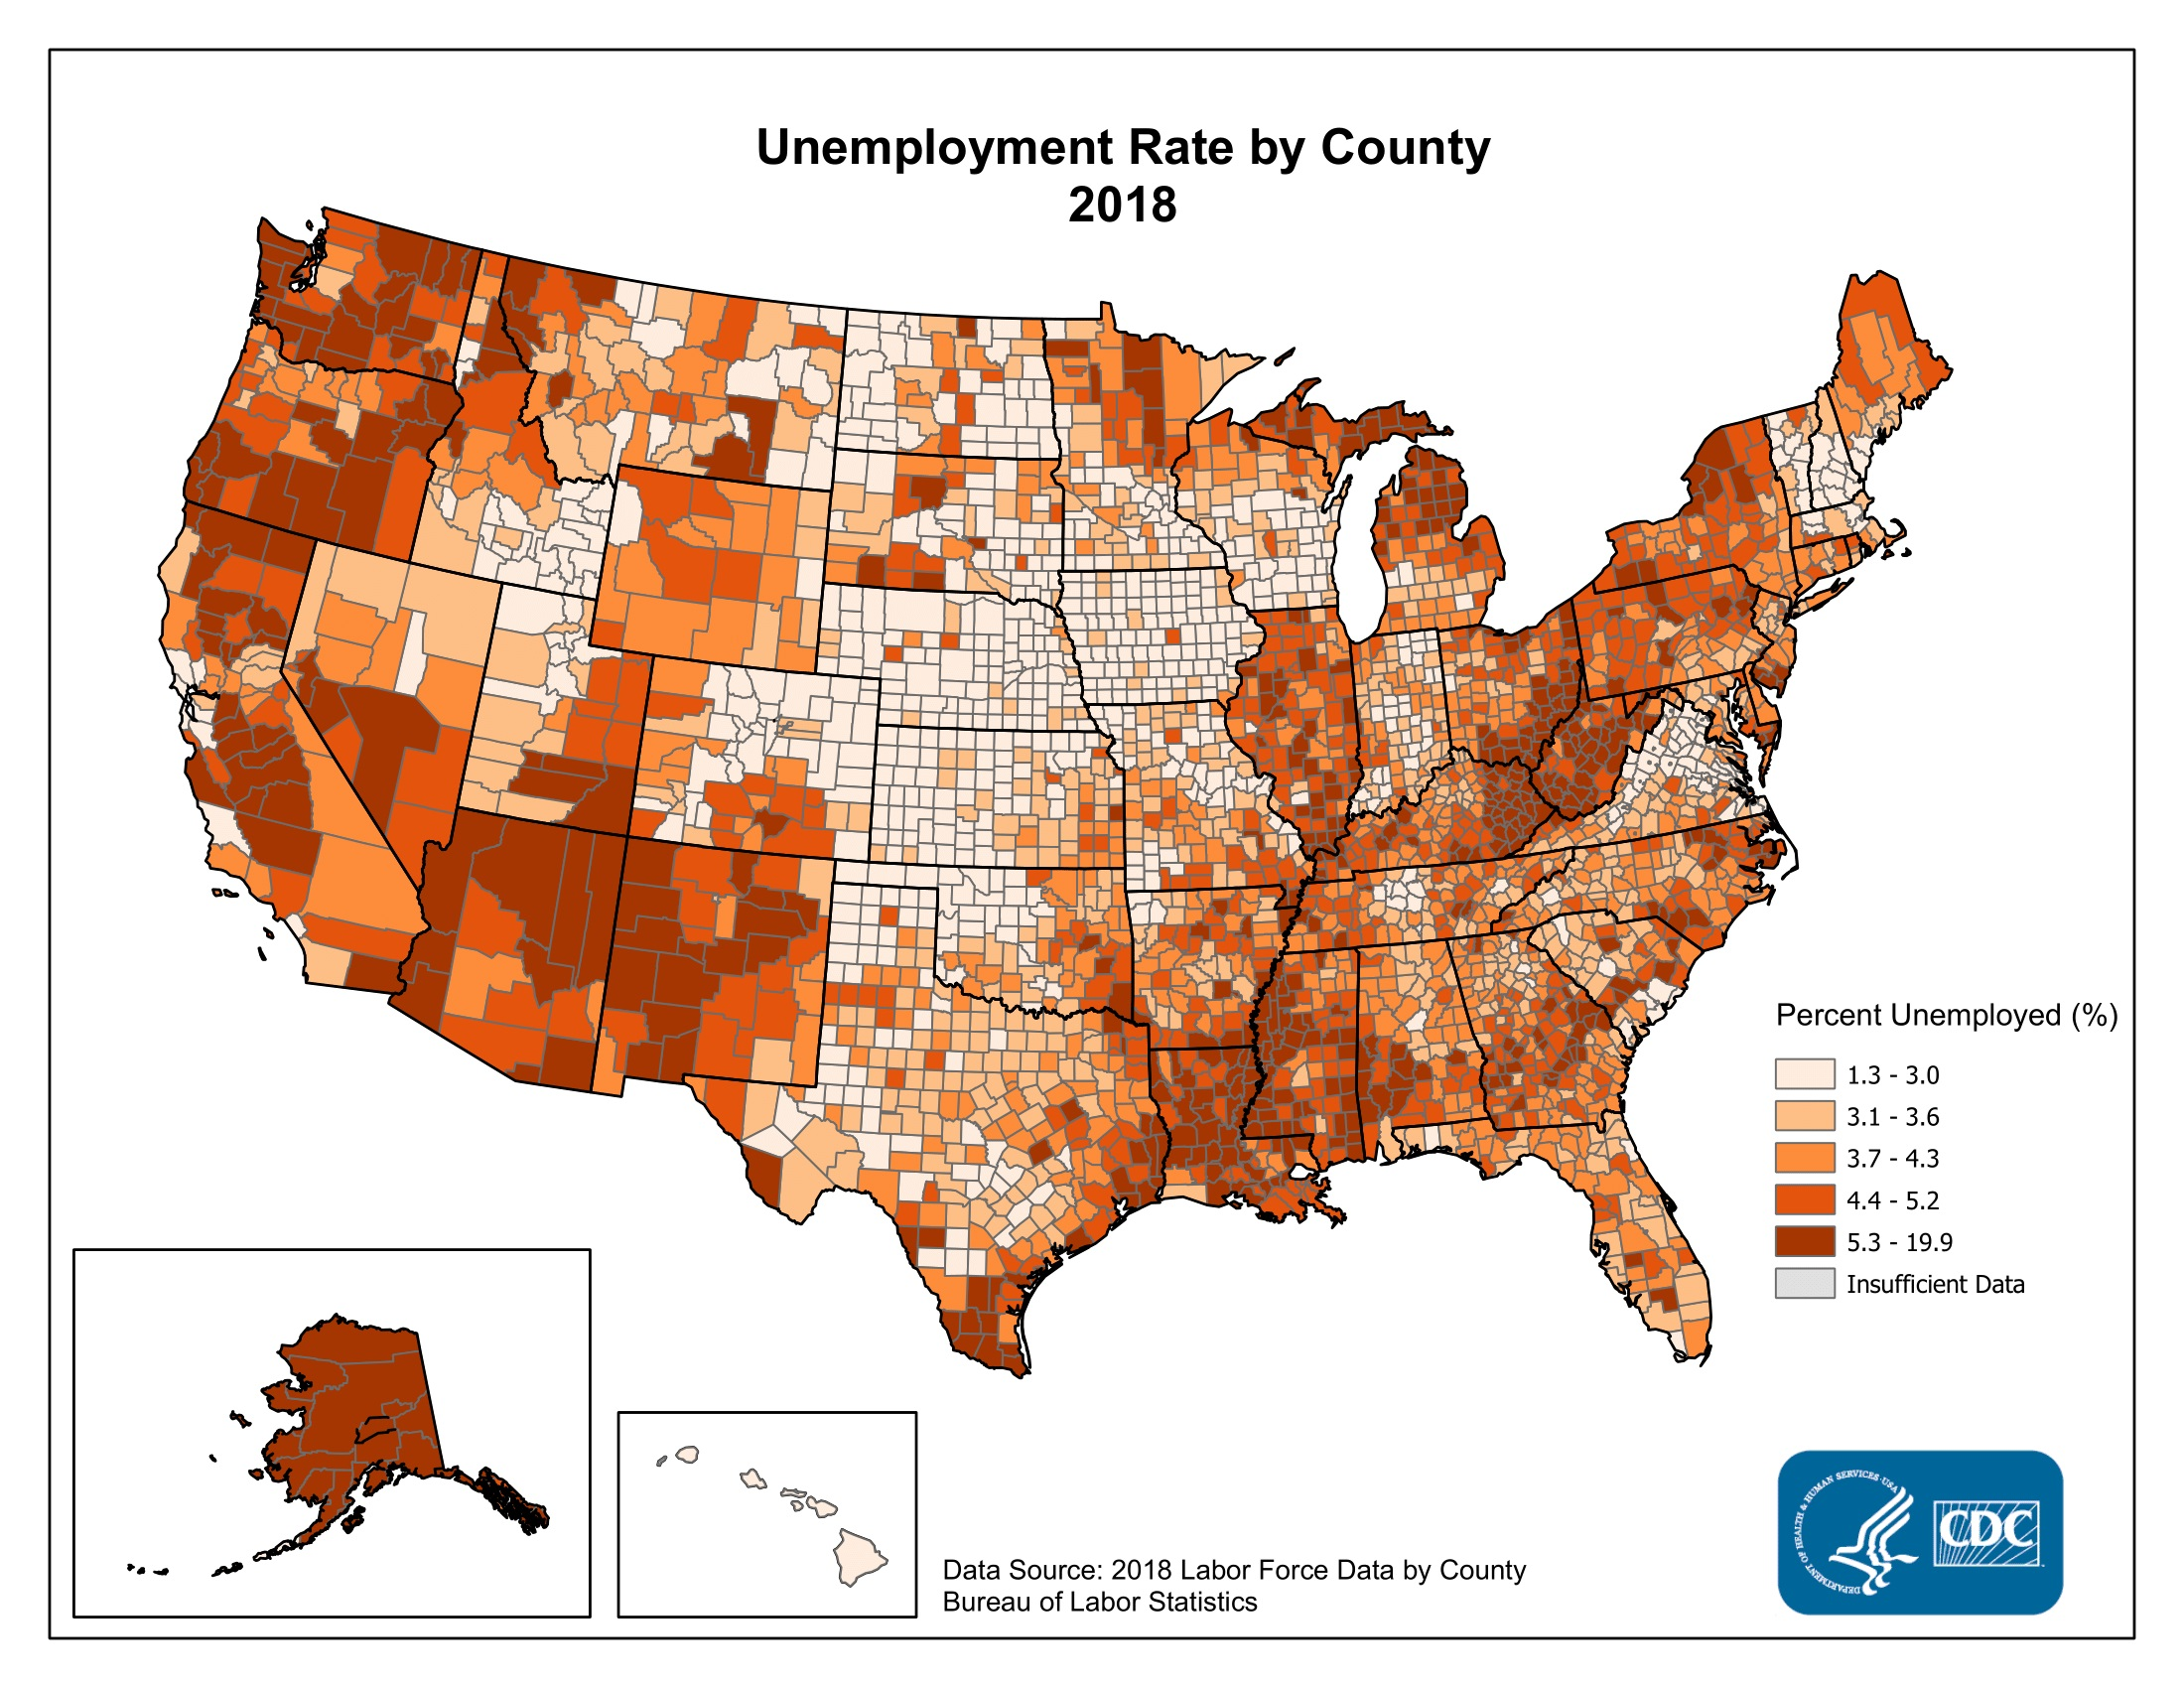 Unemployment Rate by County 2015. Counties with the highest unemployment rates in 2015 were scattered throughout northern Michigan, Alaska, the West Coast, the Mississippi Delta, eastern Kentucky, and rural Georgia and Alabama. The range in the unemployment rate was between 1.8% and 24.3%.